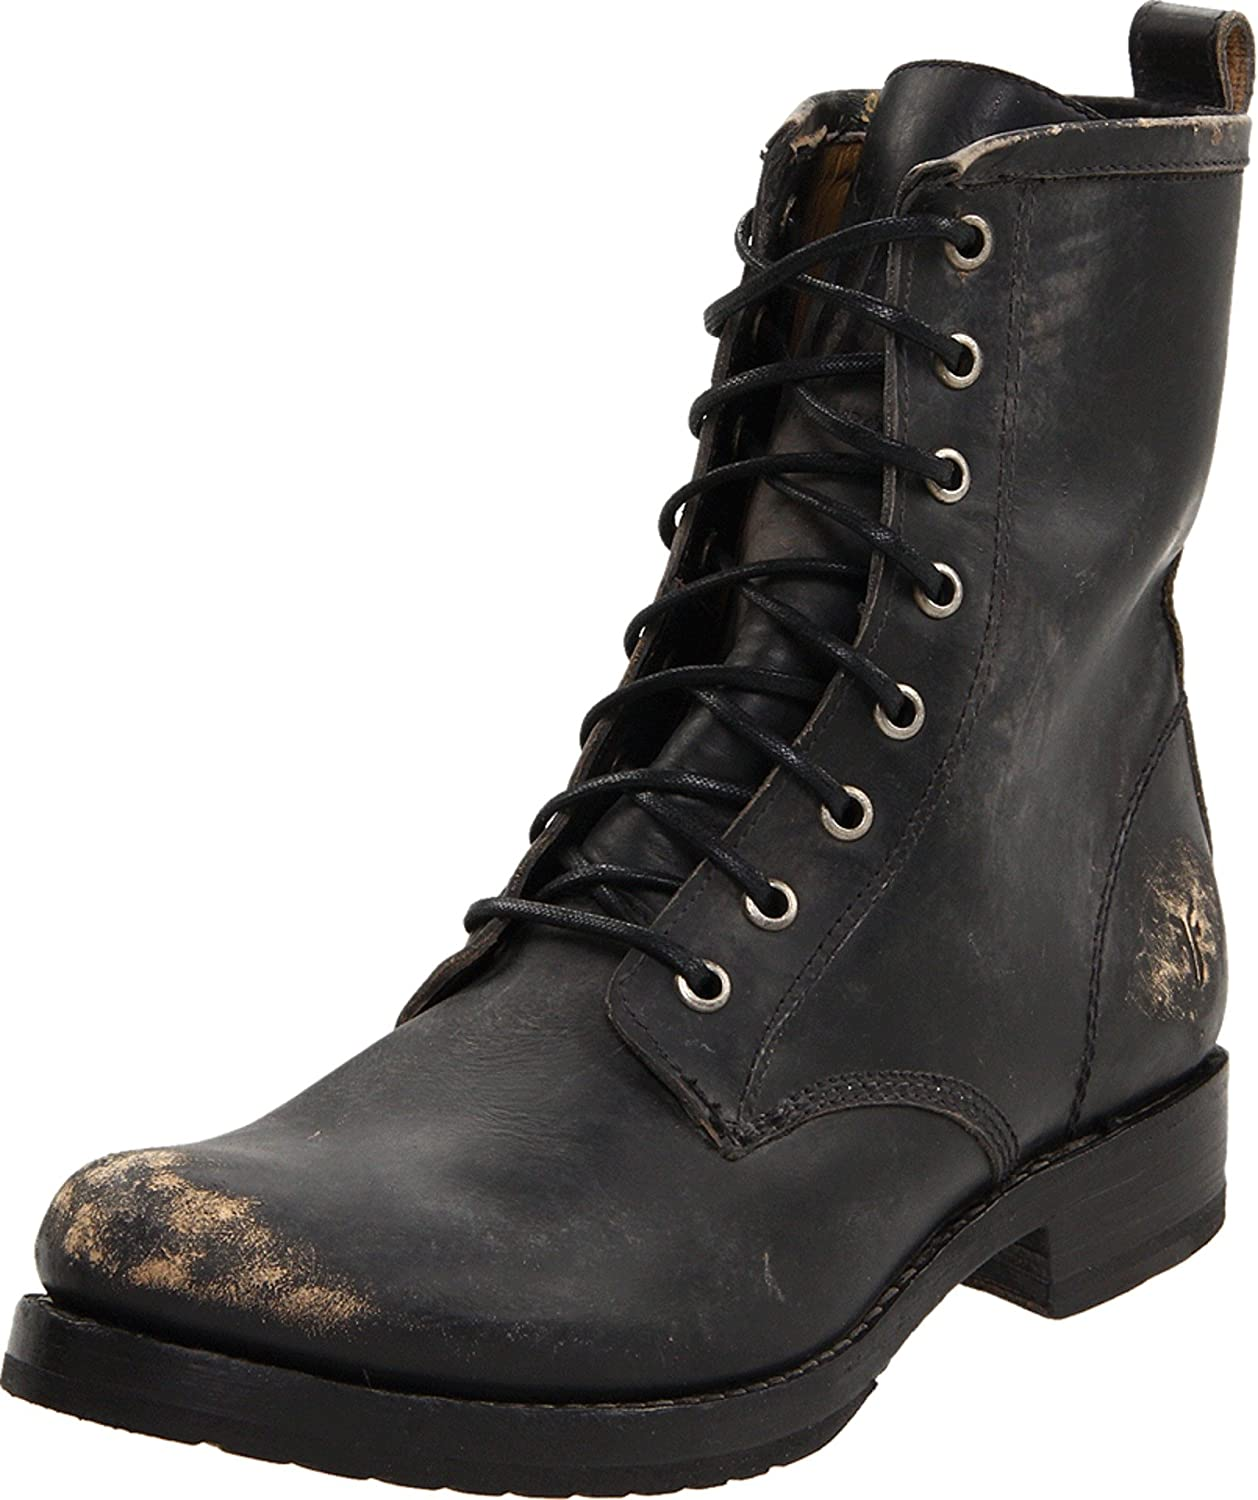 FRYE Women's Veronica Combat Boot B004OUVG1O 7 B(M) US|Black Stone Washed-76272